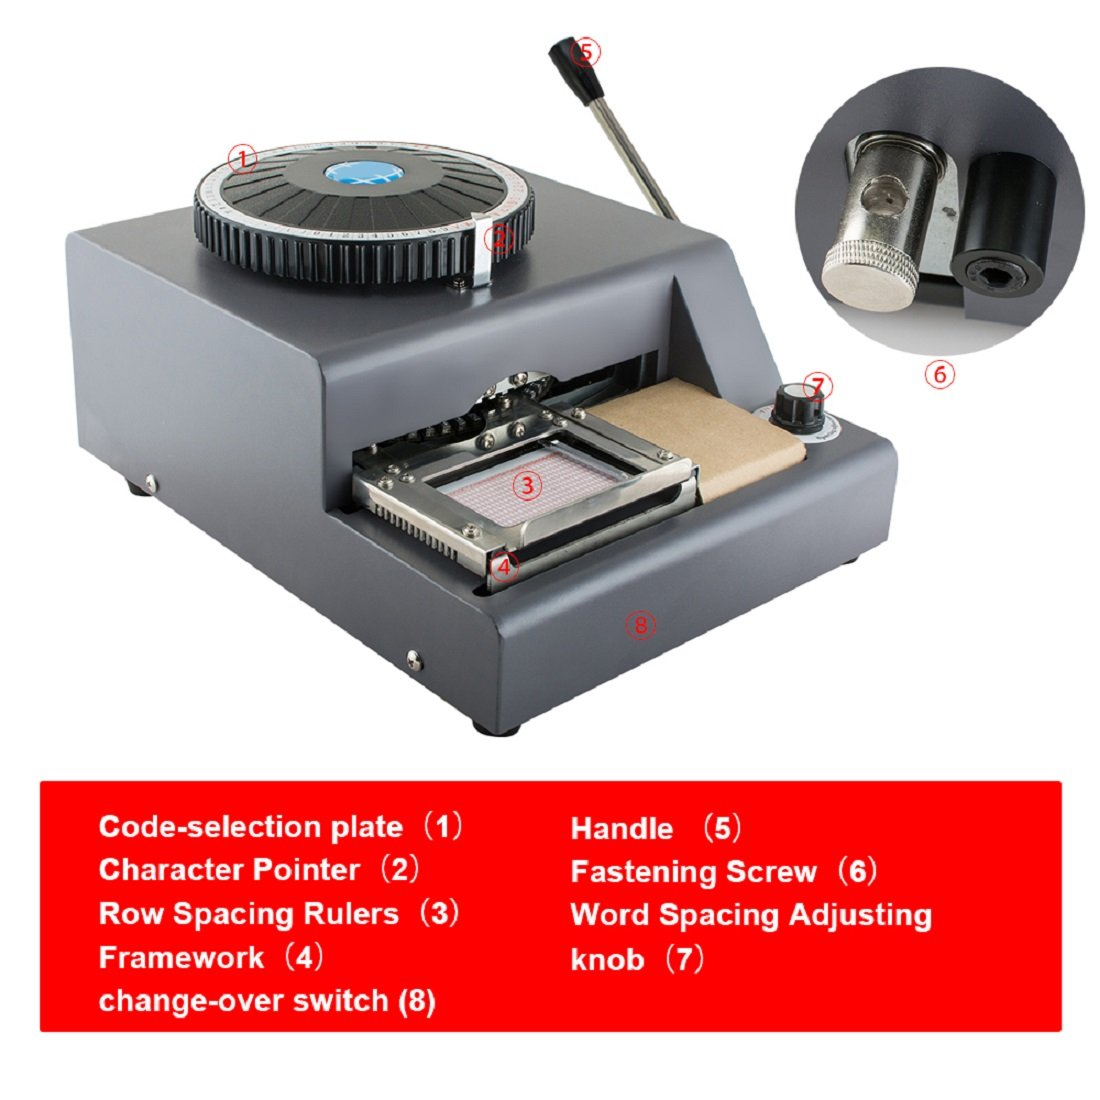 Tinsay 72 Character Letters Manual Embosser PVC Embosser 72 Characters Manual Embossing Machine PVC Gift Card Credit VIP ID Membership Stamping Embossing- US Shipping, 3-6 Days Delivery